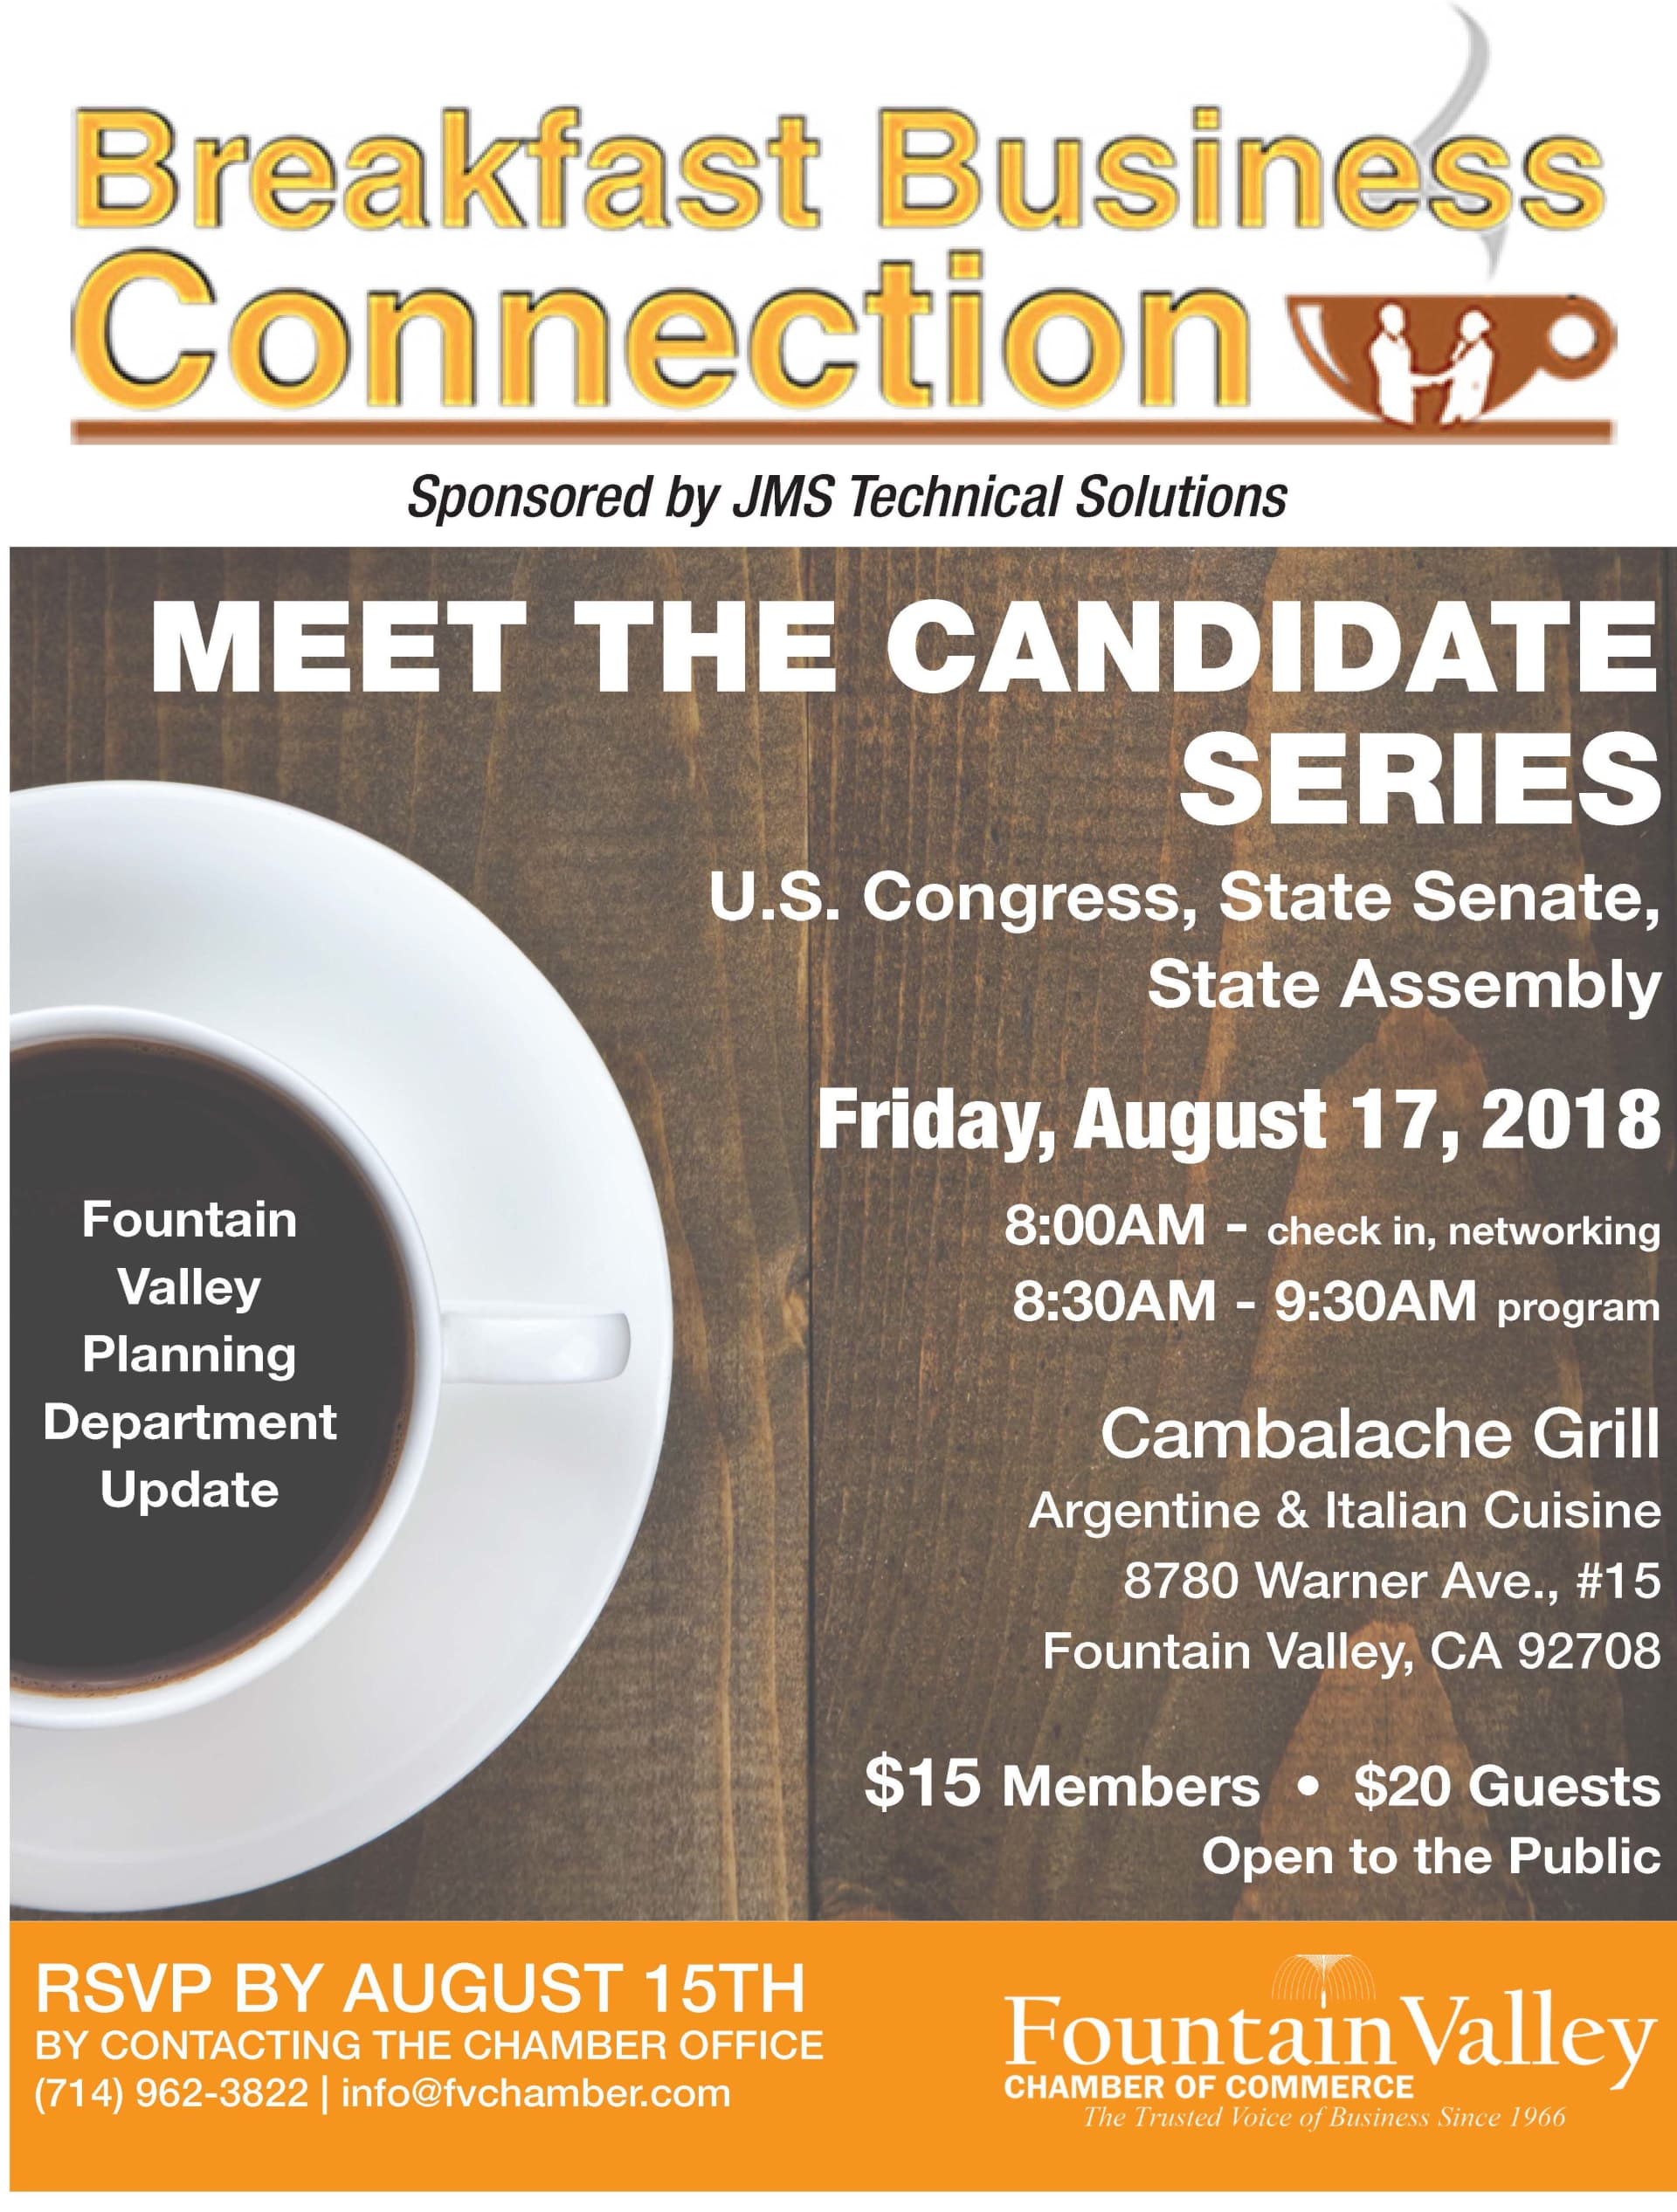 Fountain Valley Chamber Breakfast Business Connection